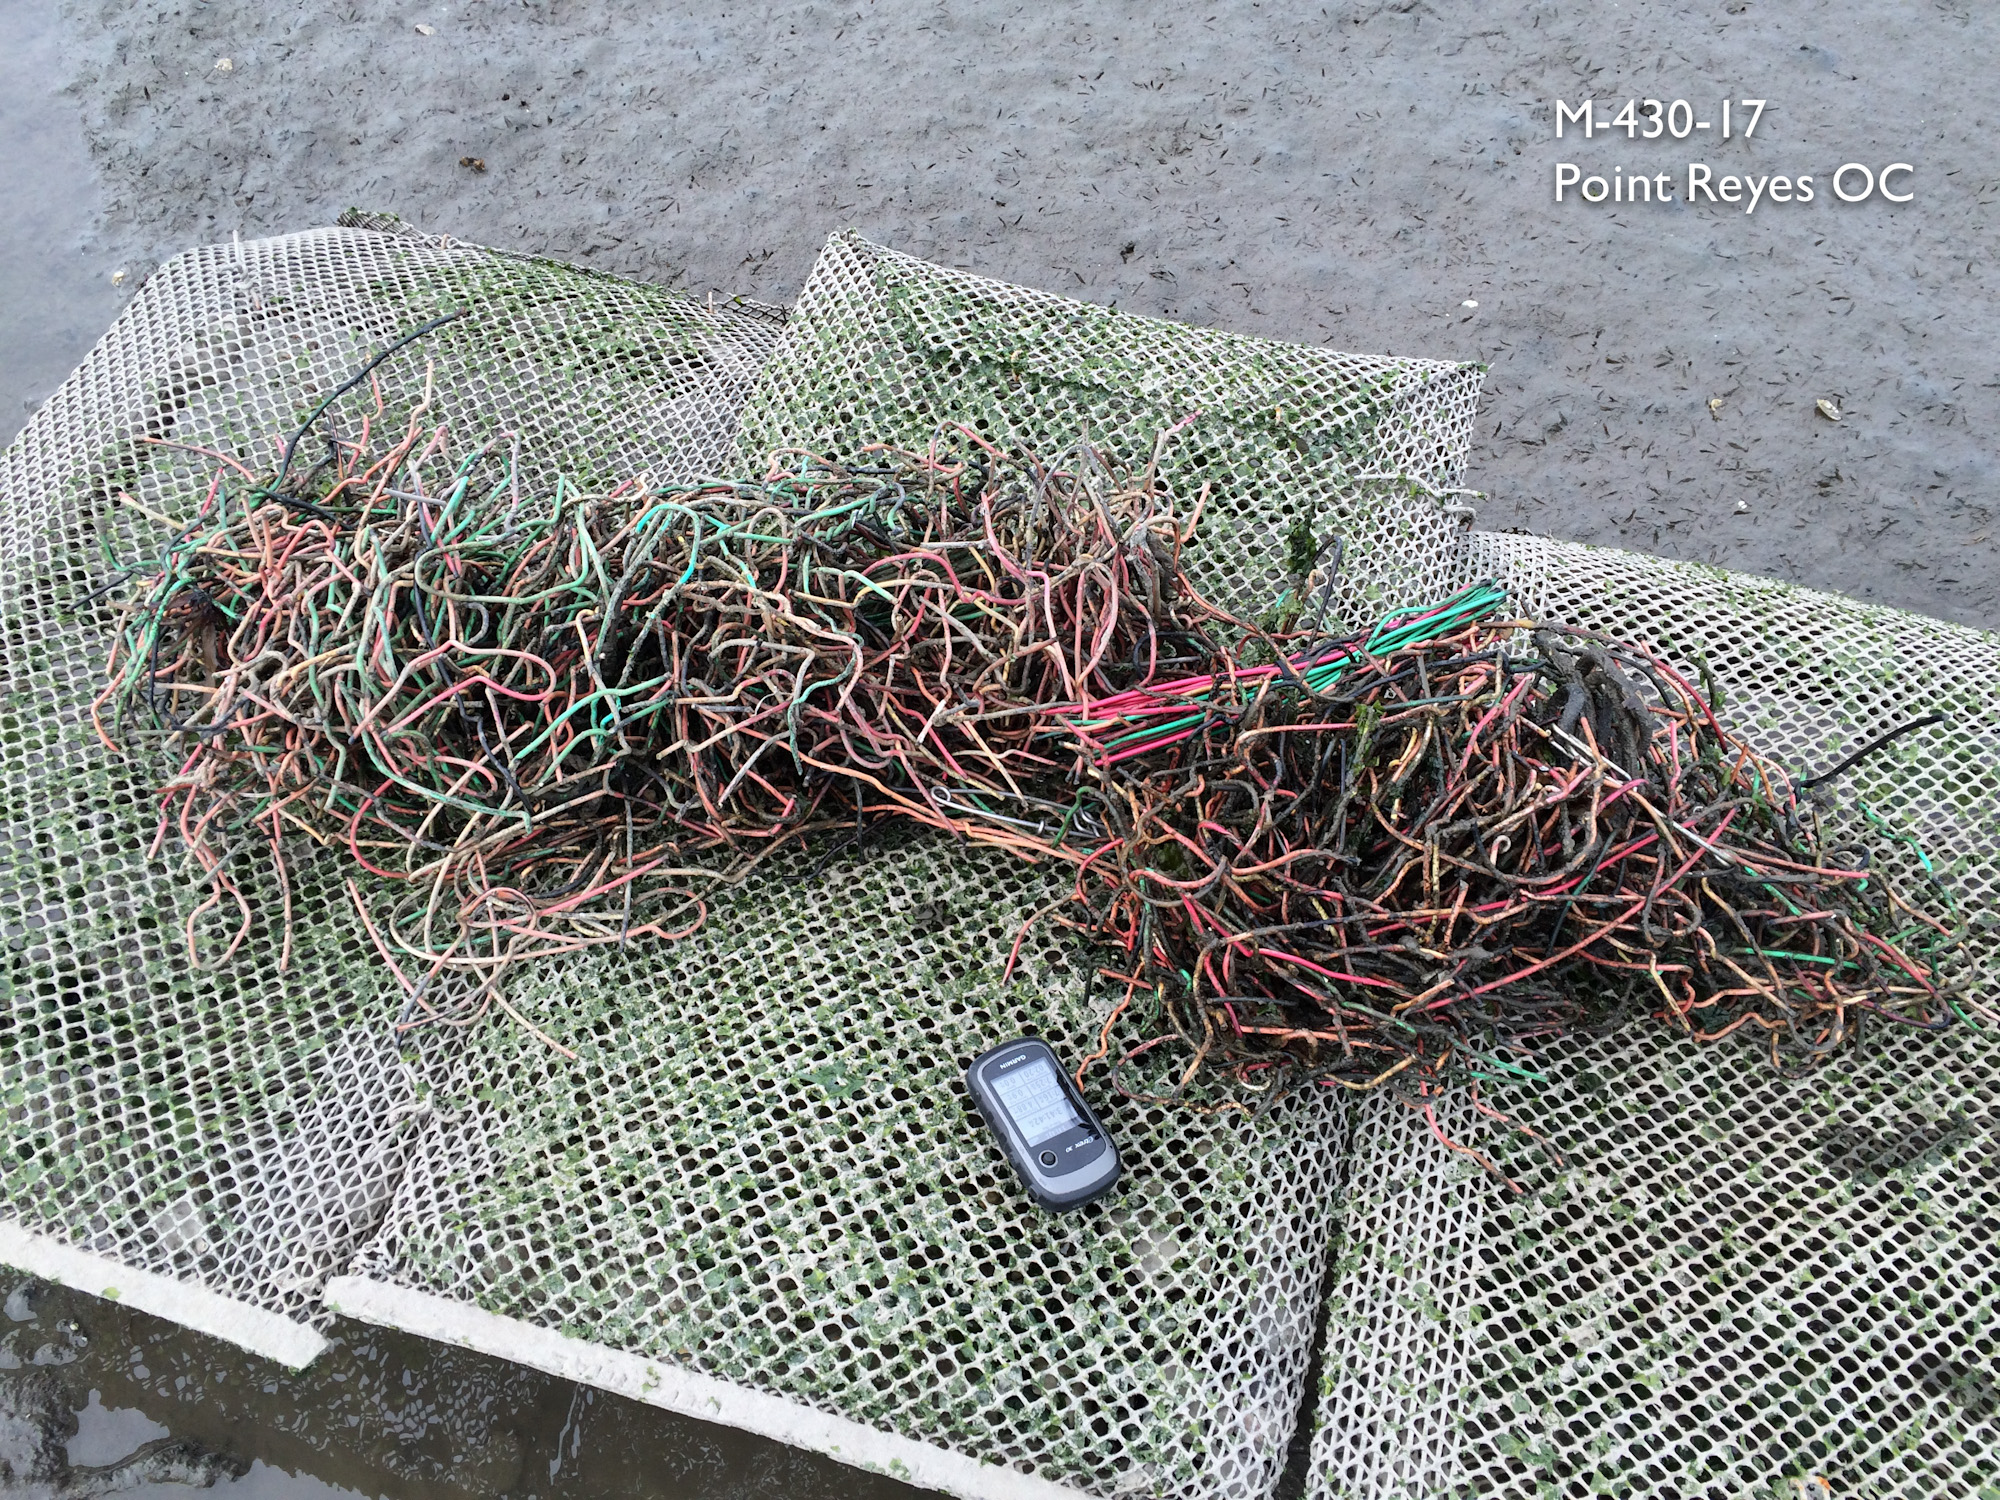 About 20 pounds of plastic coated copper wire i picked up from under the racks, laying in the mud on lease M-430-17, run by Point Reyes Oyster Company.